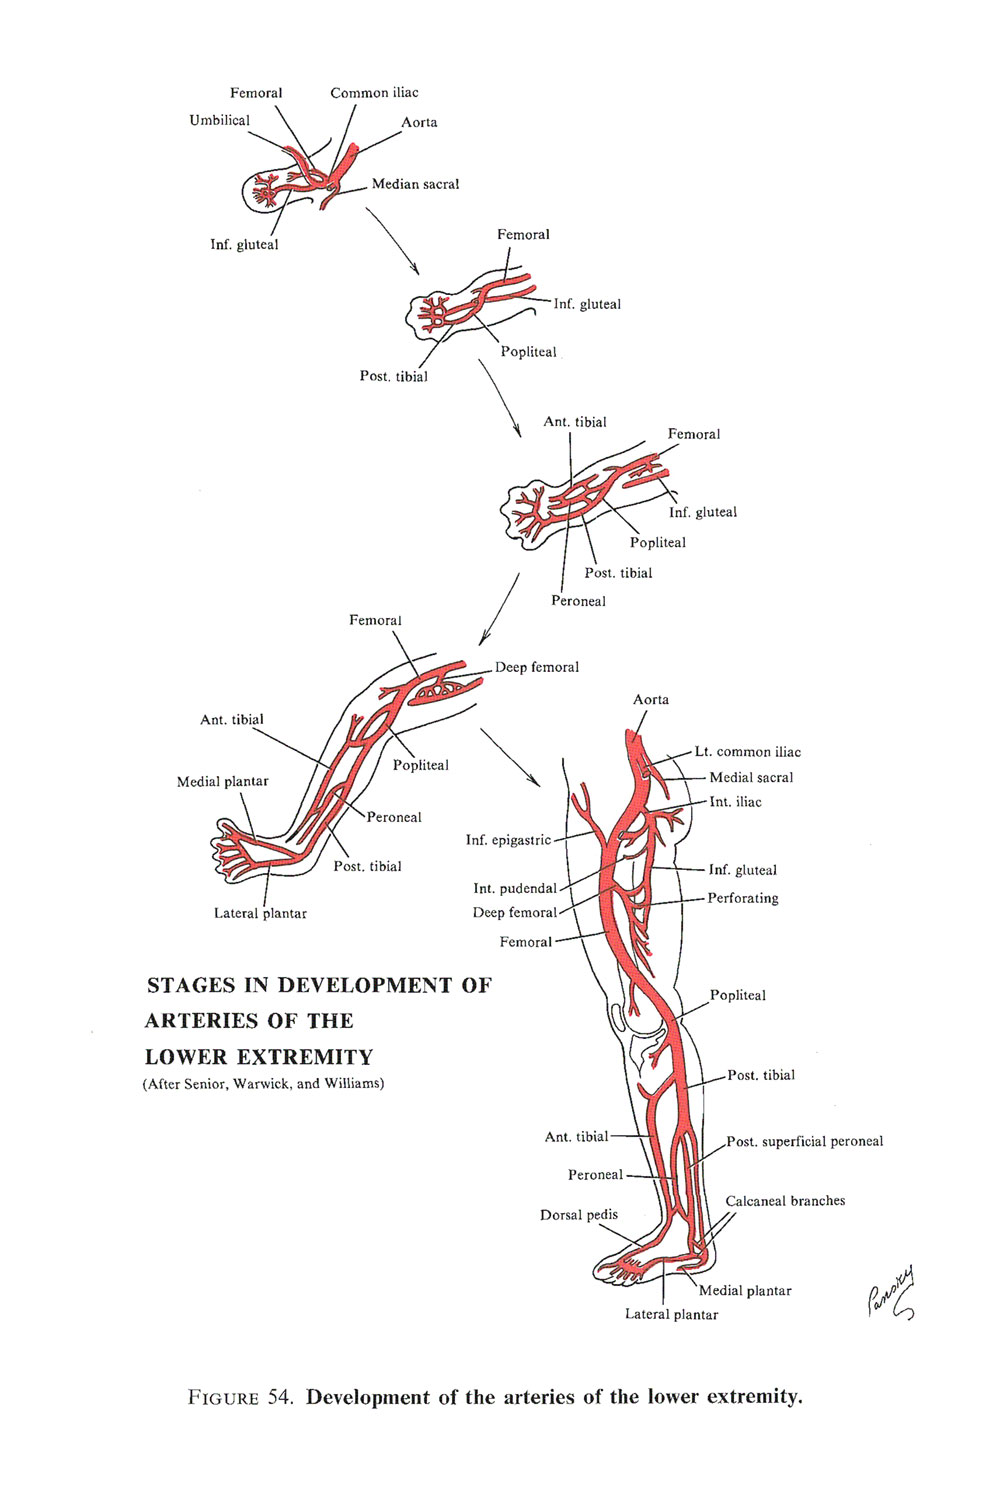 development of the arterial system: image #3